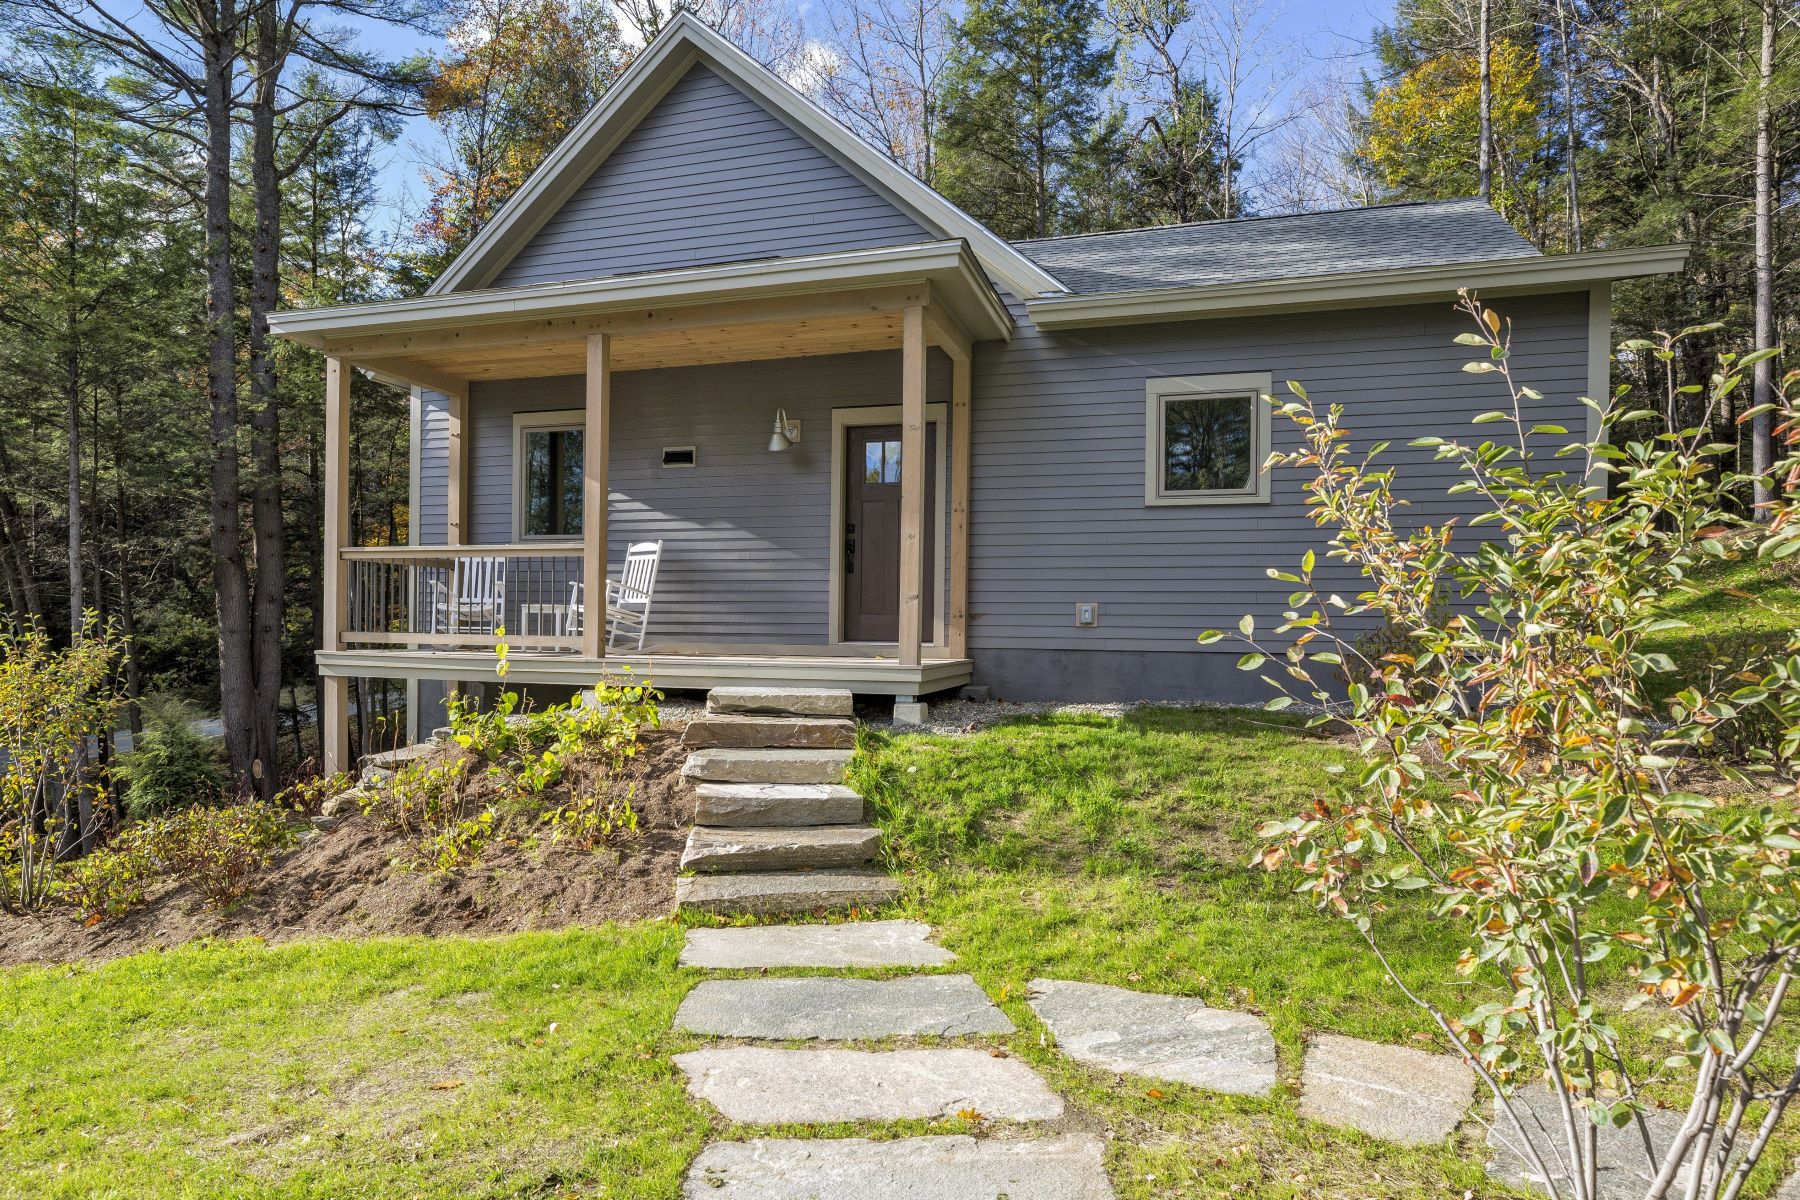 Single Family Home for Sale at Three Bedroom Farmhouse in Quechee Lakes 1047 Willard Rd 5209 Hartford, Vermont 05059 United States